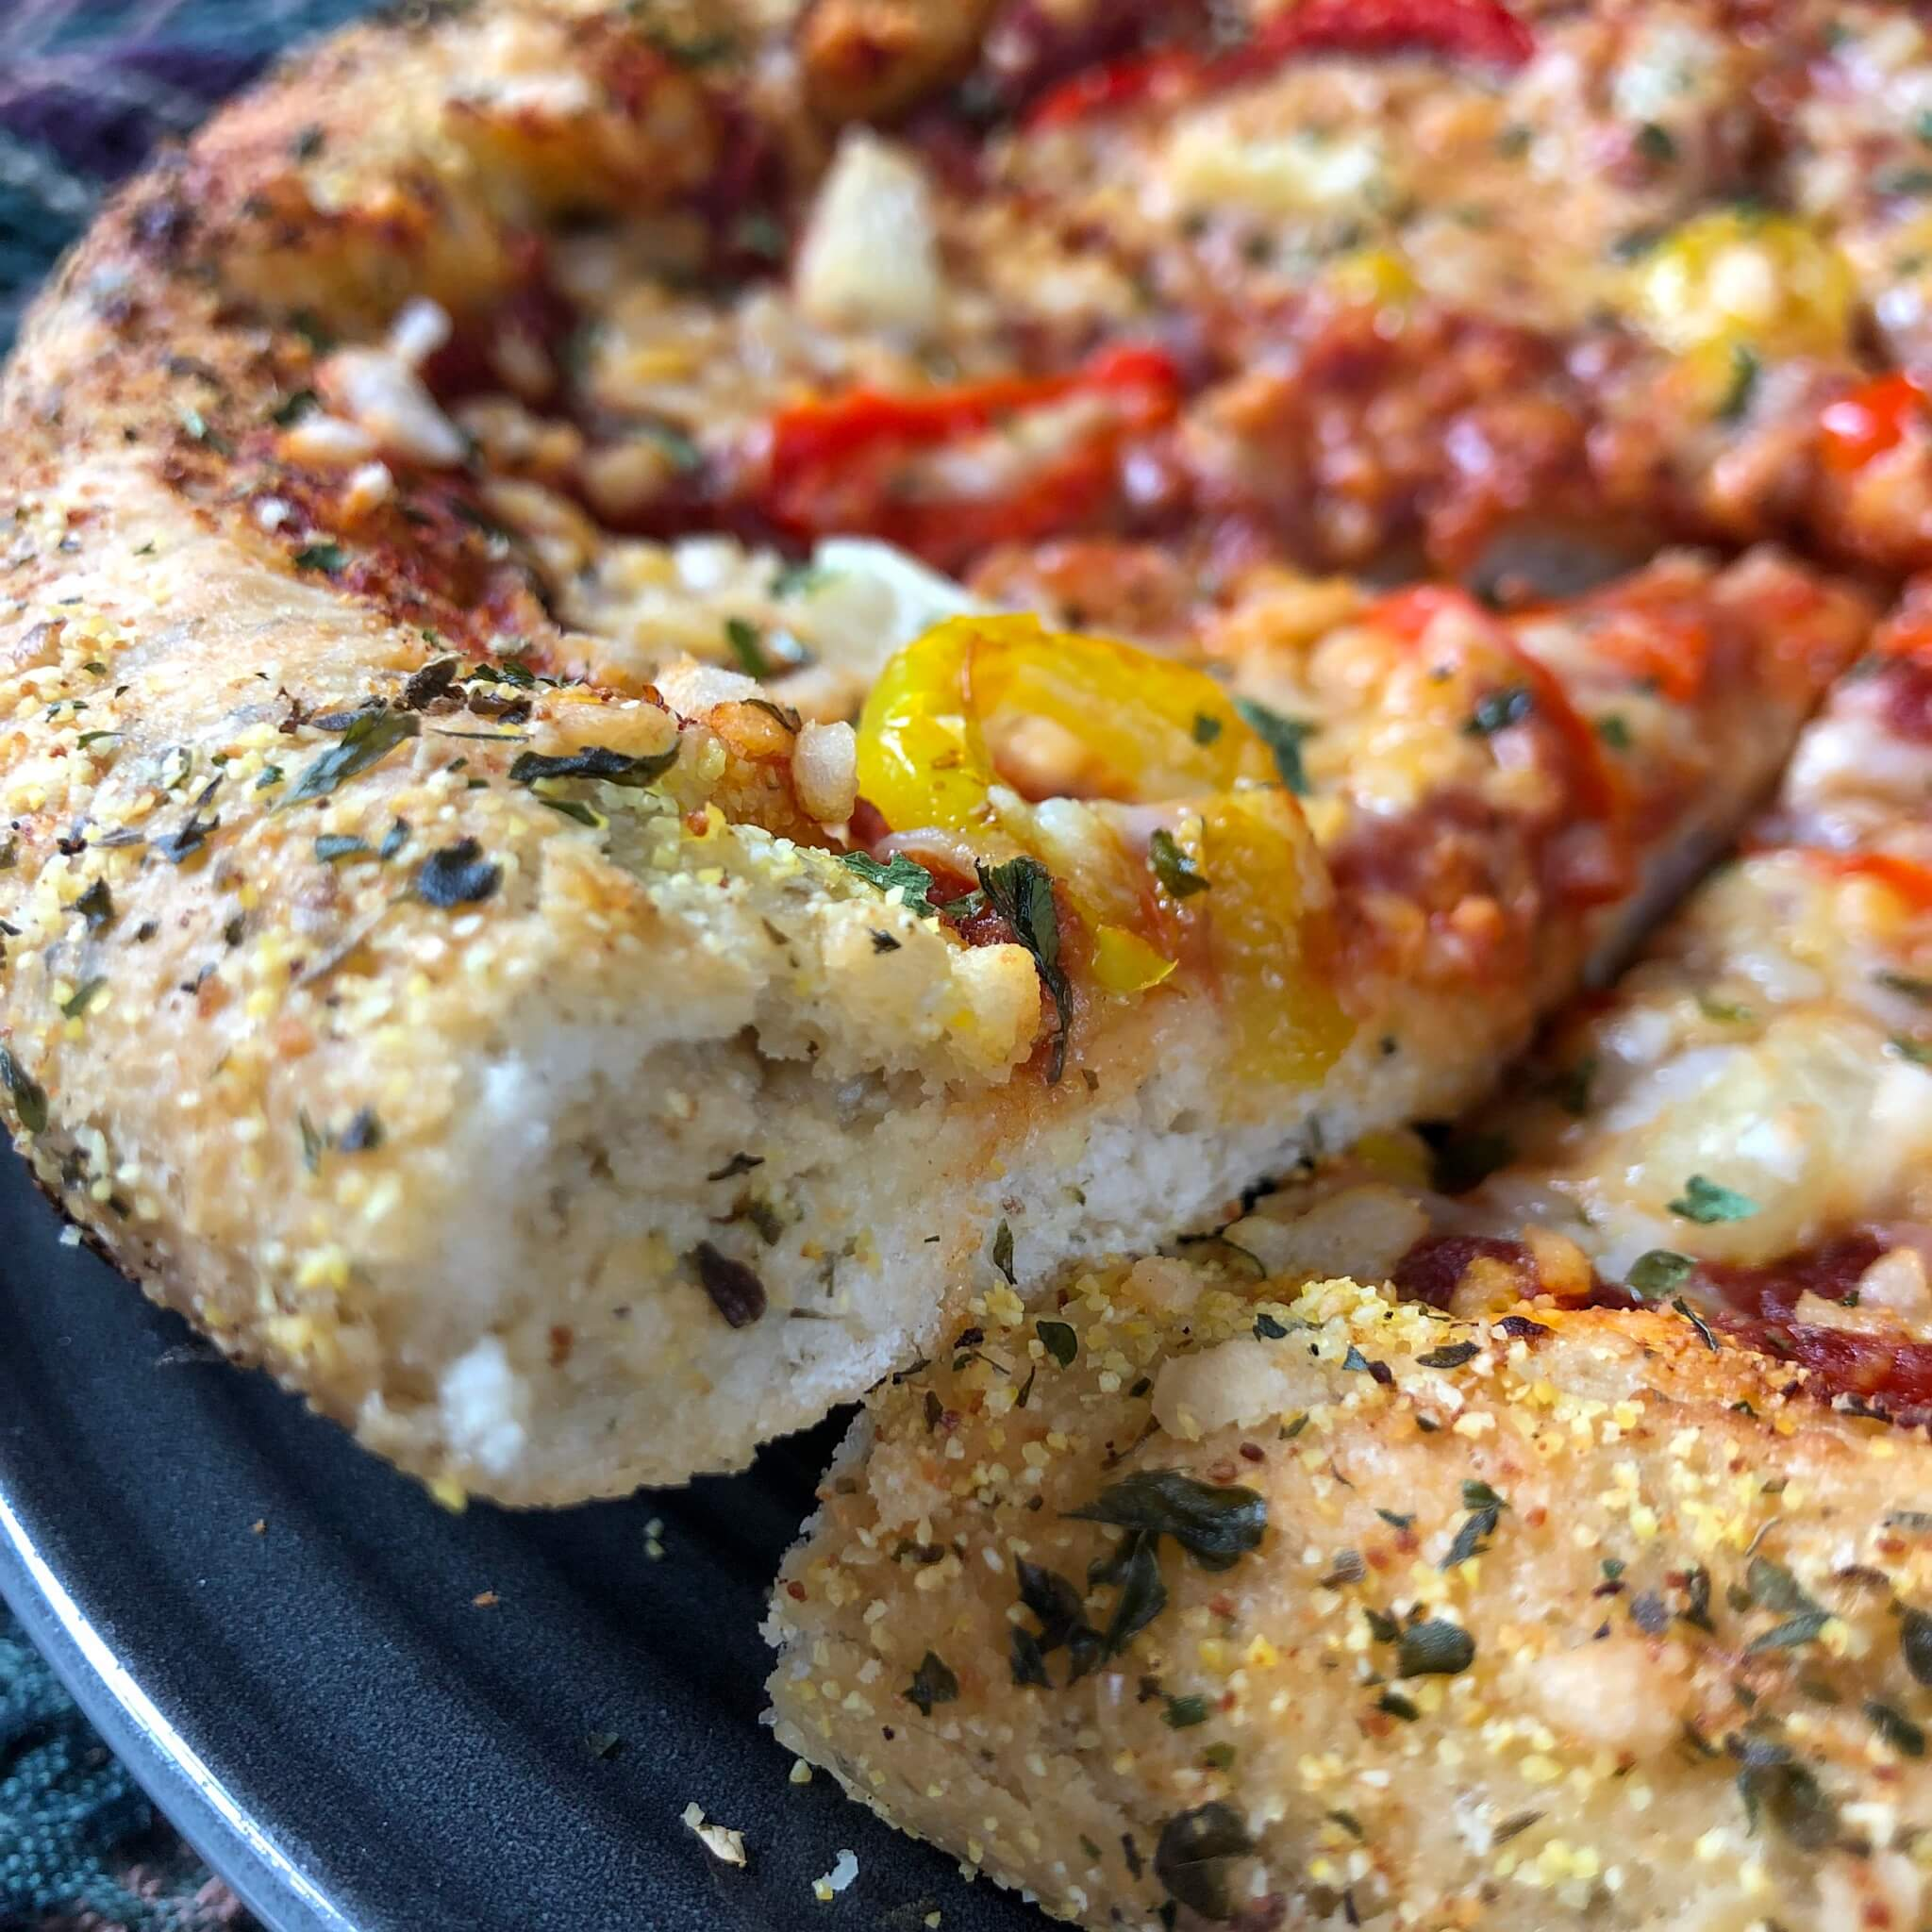 vegan stuffed crust pizza with fauxmage